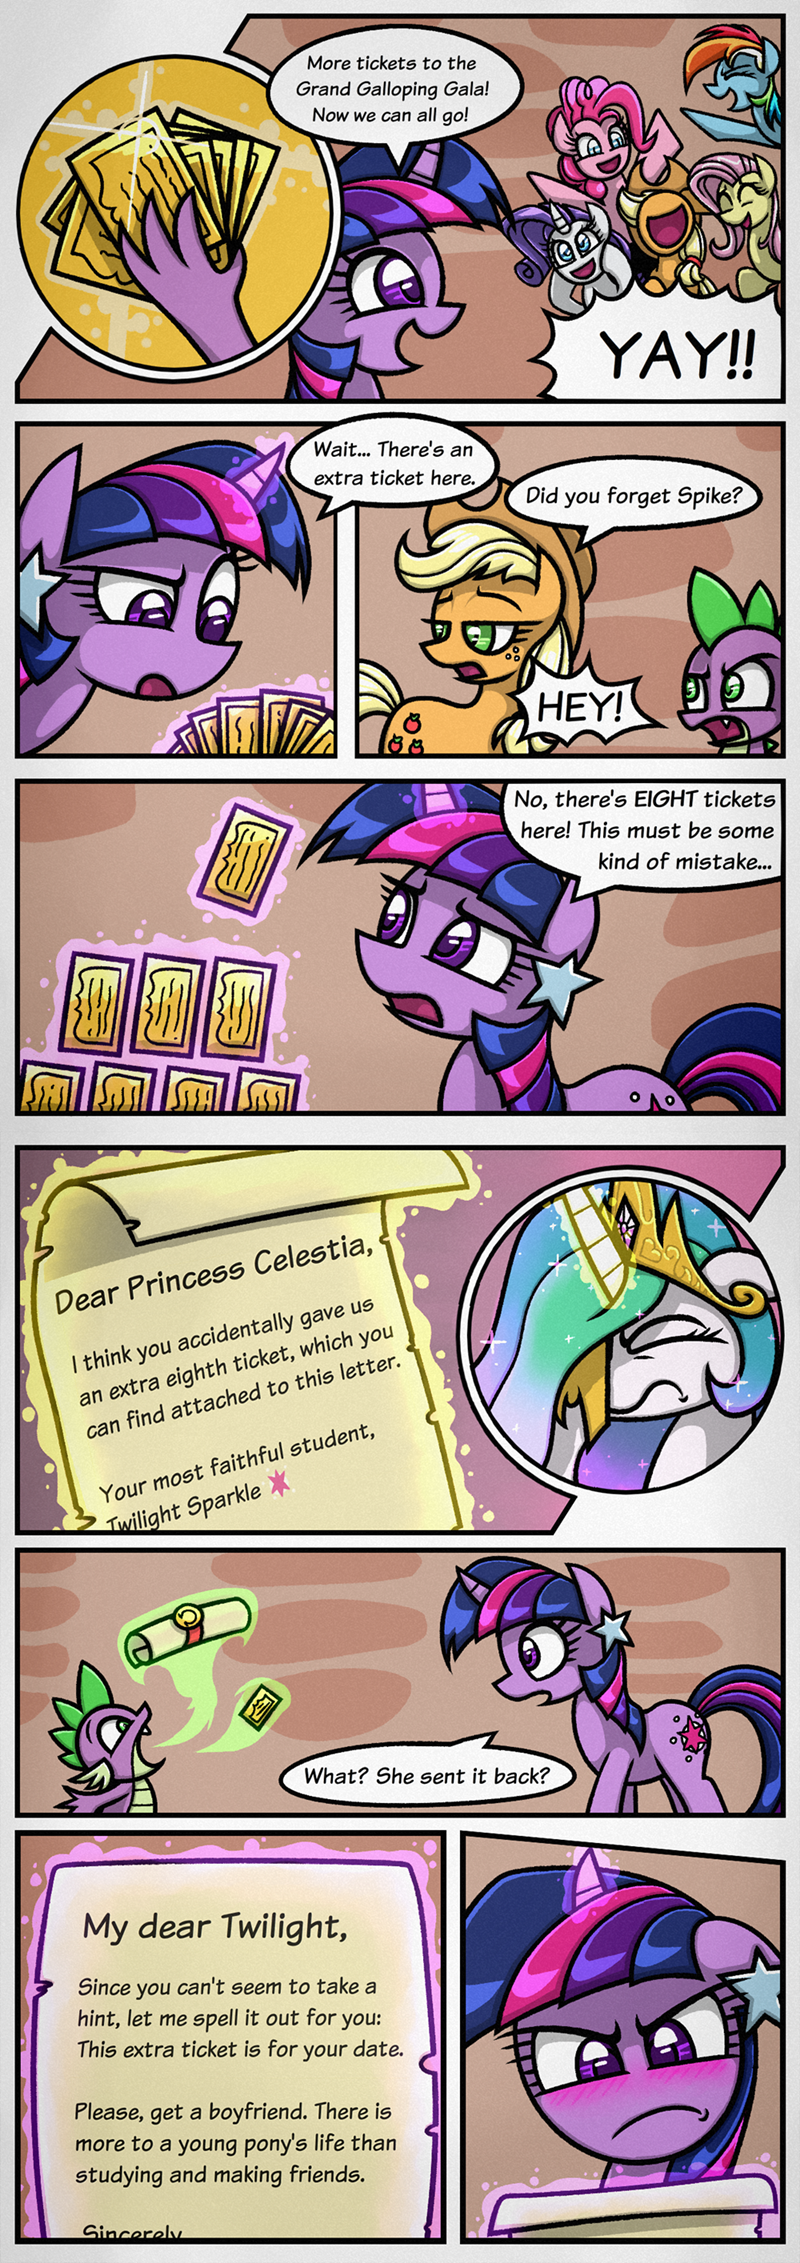 rambopvp the best night ever spike applejack twilight sparkle pinkie pie rarity comic princess celestia fluttershy rainbow dash - 9105684224